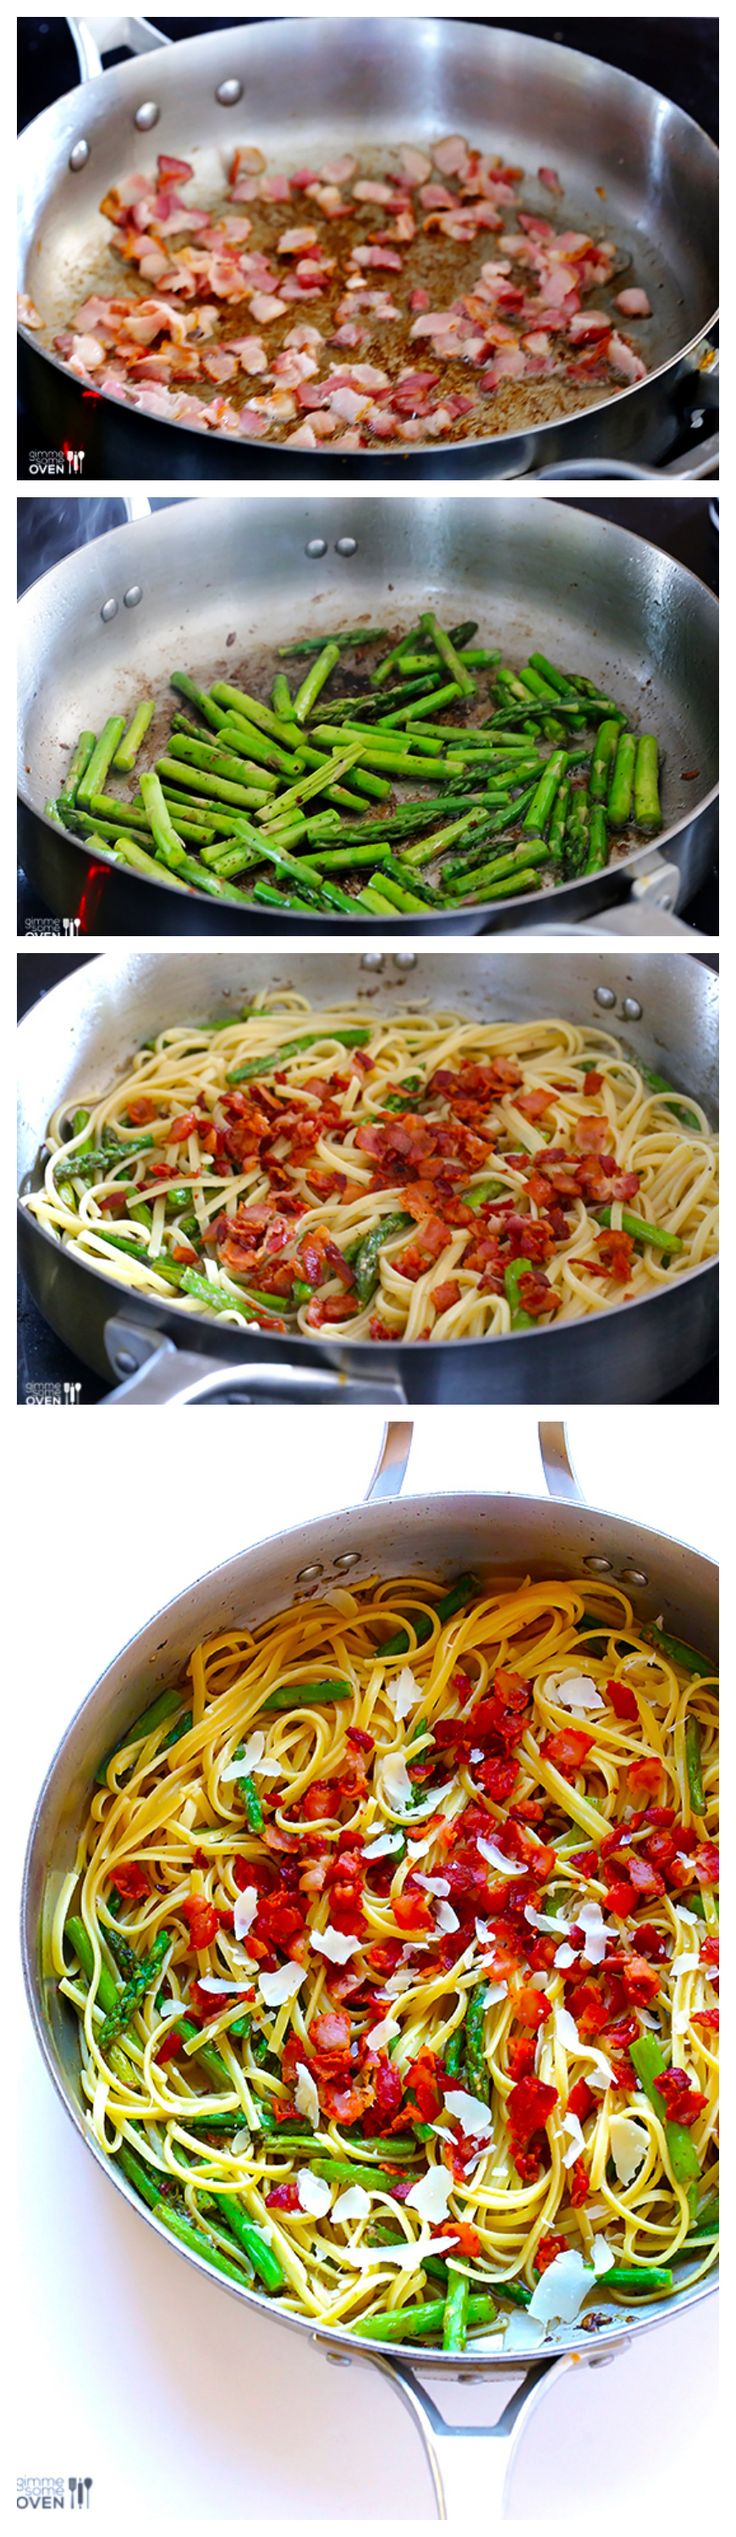 5-Ingredient Bacon Asparagus Pasta @Jennyy71